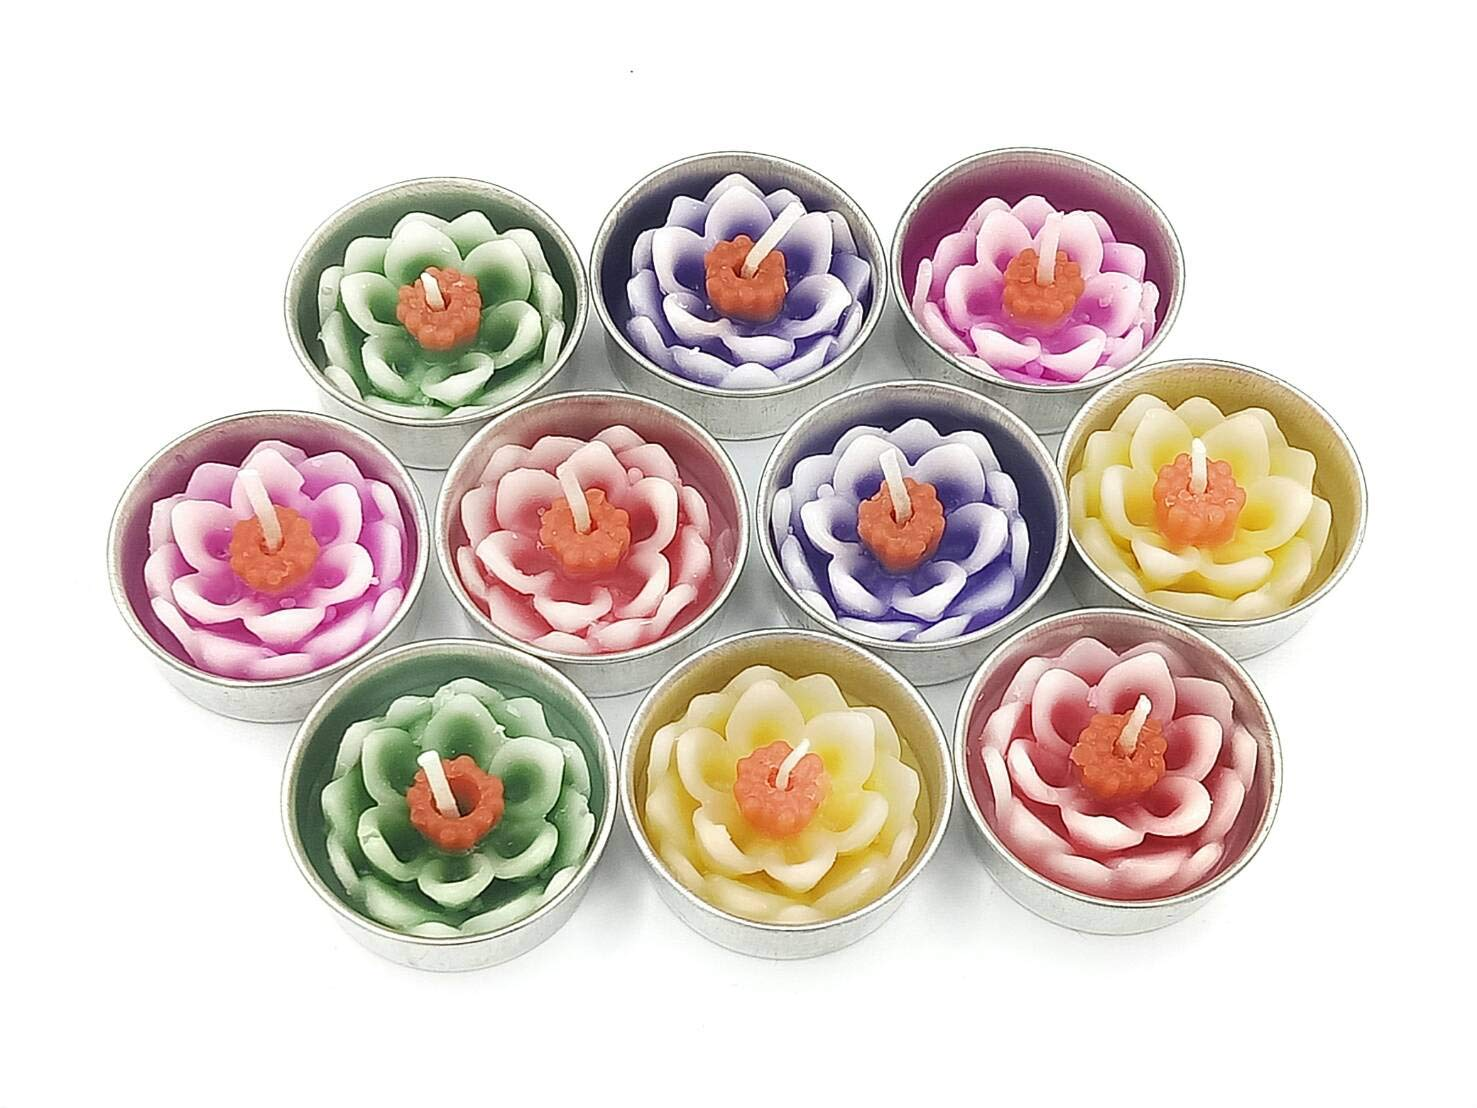 Jakapan Lotus Flower Candle in Tea Lights, Floating Candles, Scented Tea Lights, Aromatherapy Relax, Gift Set 10 Pcs